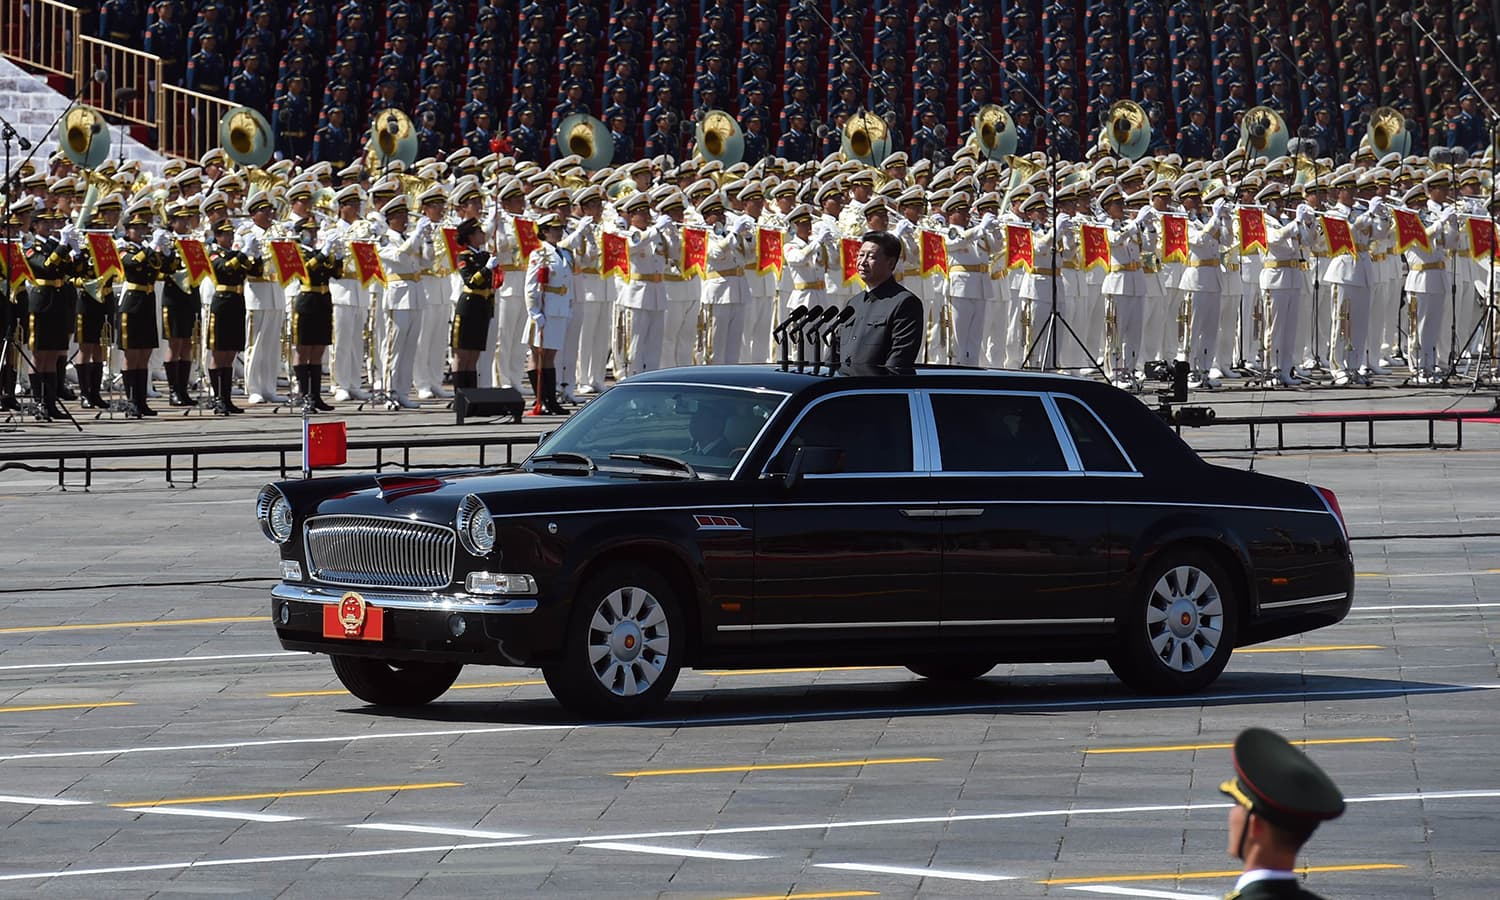 Chinese President Xi Jinping begins a review of troops from a car during a military parade at Tiananmen Square in Beijing on September 3, 2015, to mark the 70th anniversary of victory over Japan and the end of World War II. China kicked off a huge military ceremony marking the 70th anniversary of Japan's defeat in World War II on September 3, as major Western leaders stayed away. (Phtoo courtesy: AFP/ GREG BAKER)